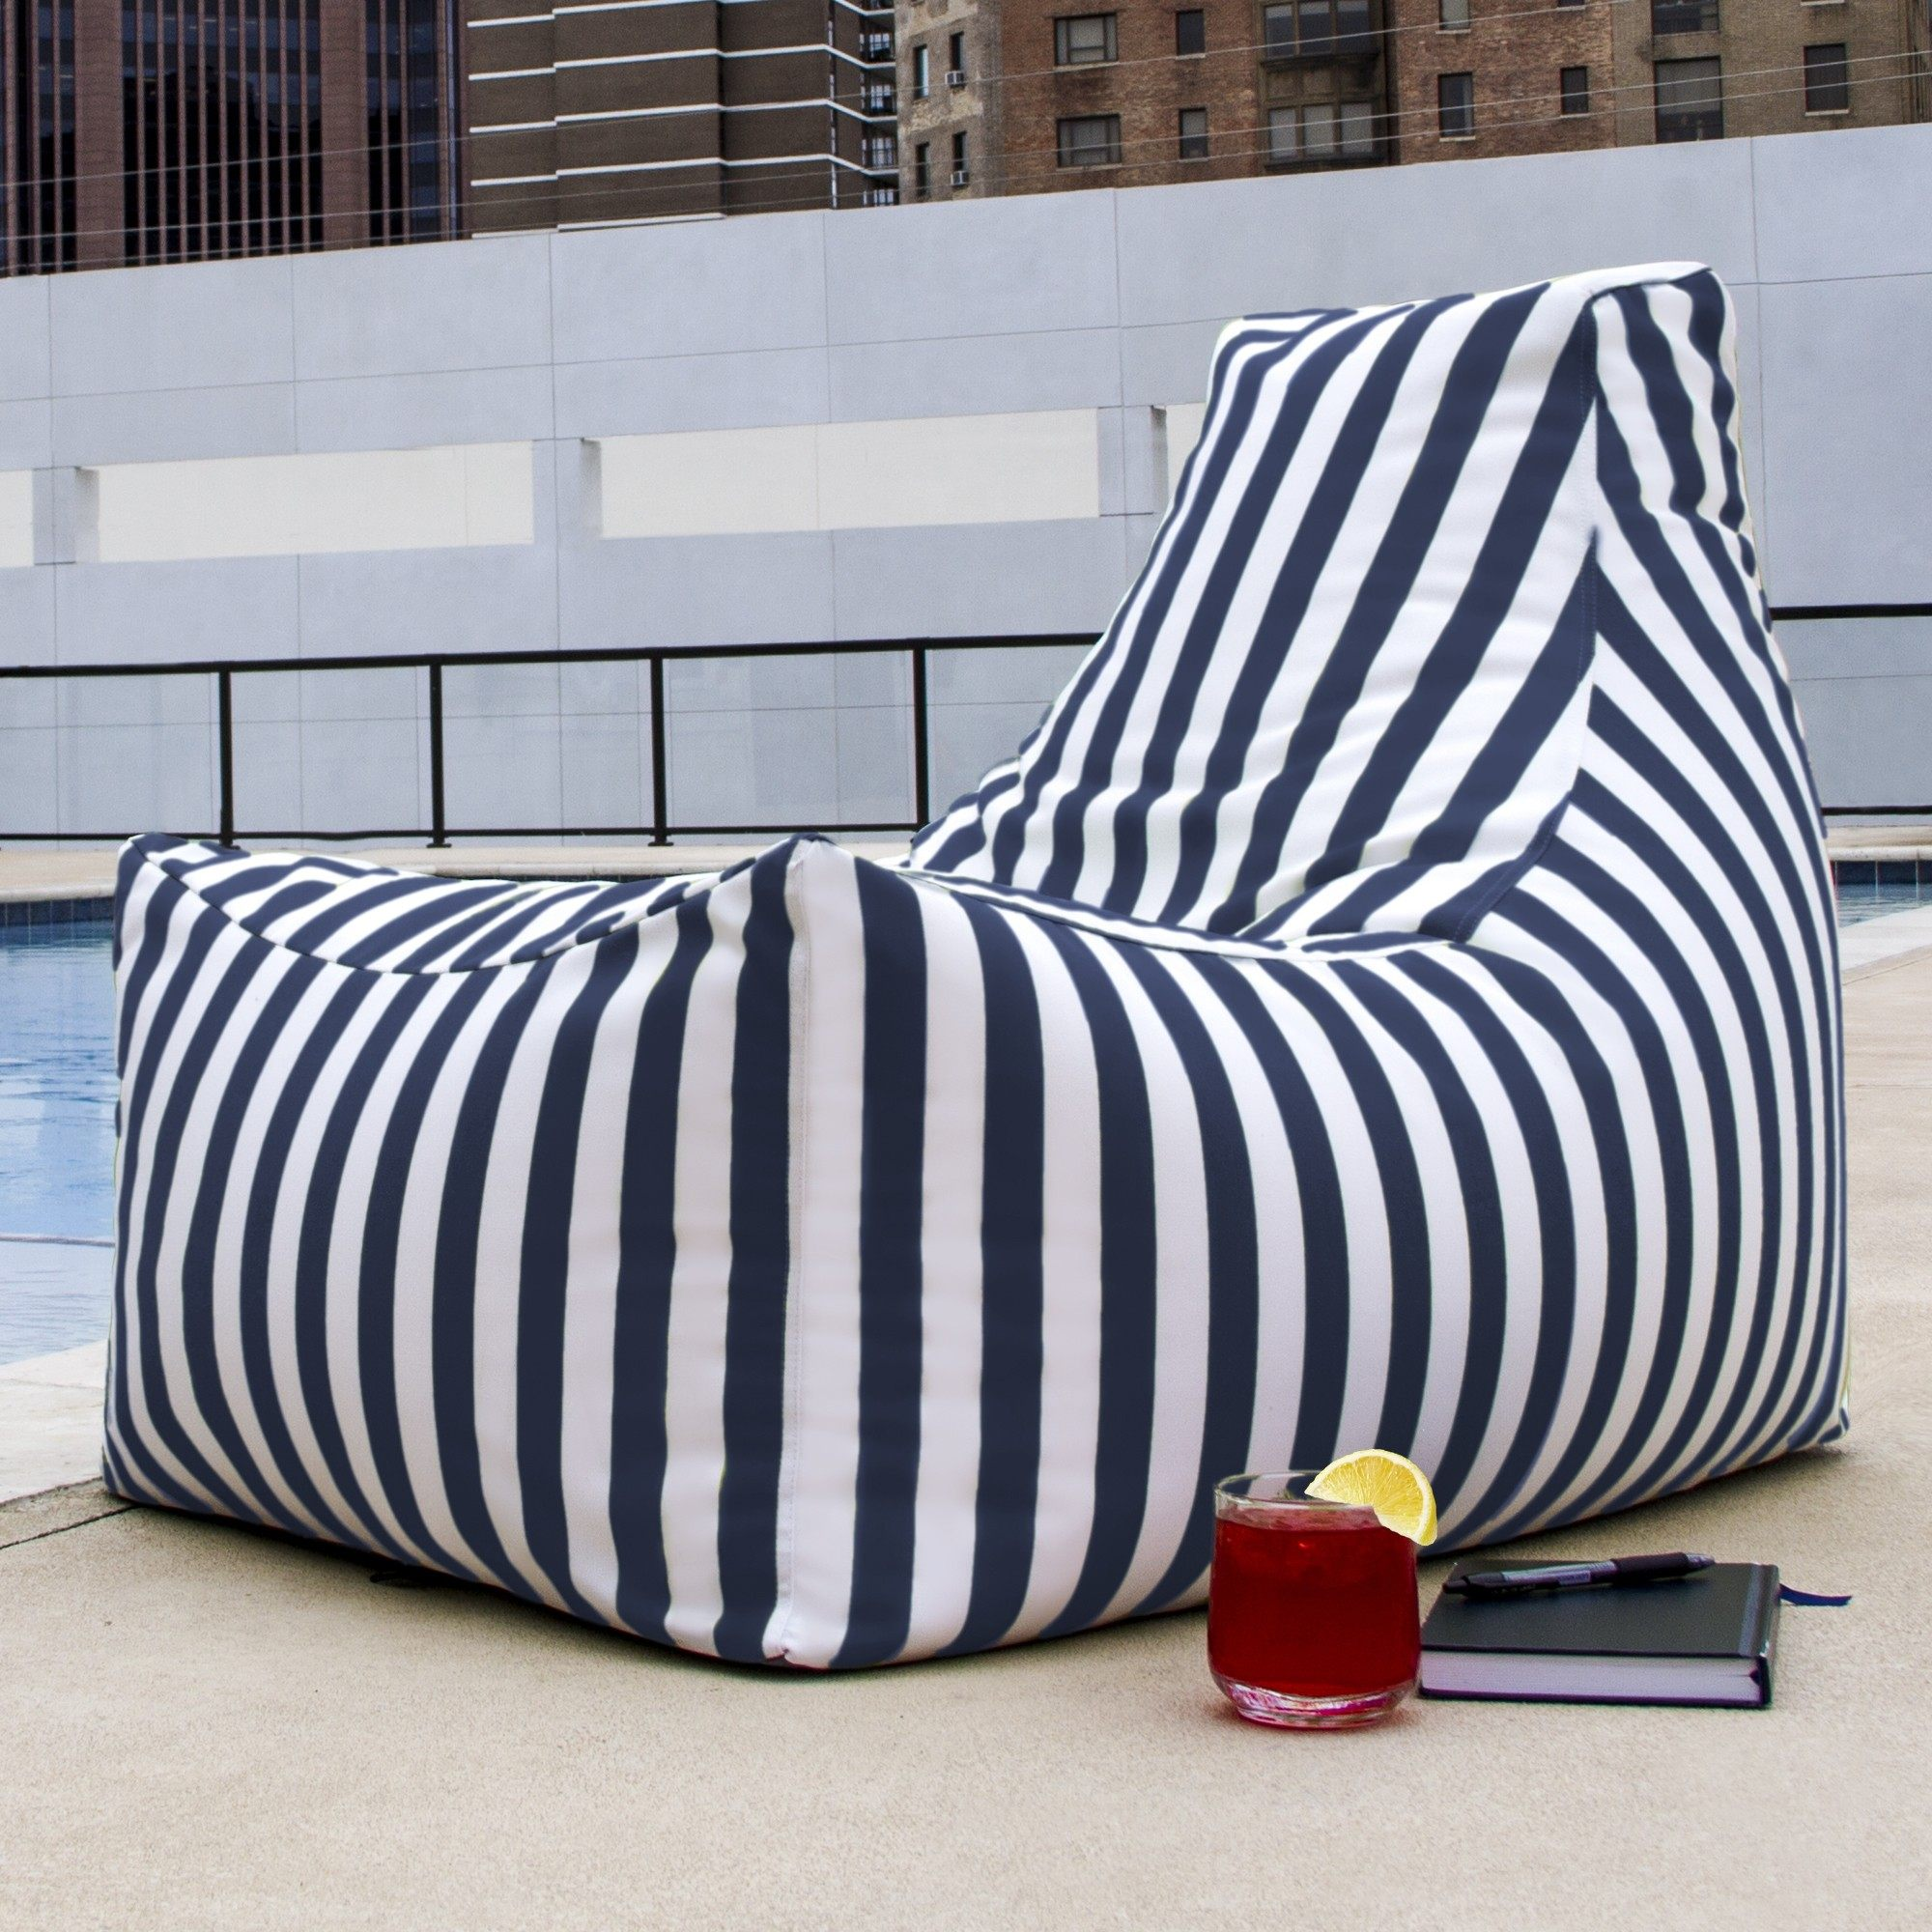 Groovy Juniper Outdoor Patio Bean Bag Chair Navy Stripe Ocoug Best Dining Table And Chair Ideas Images Ocougorg